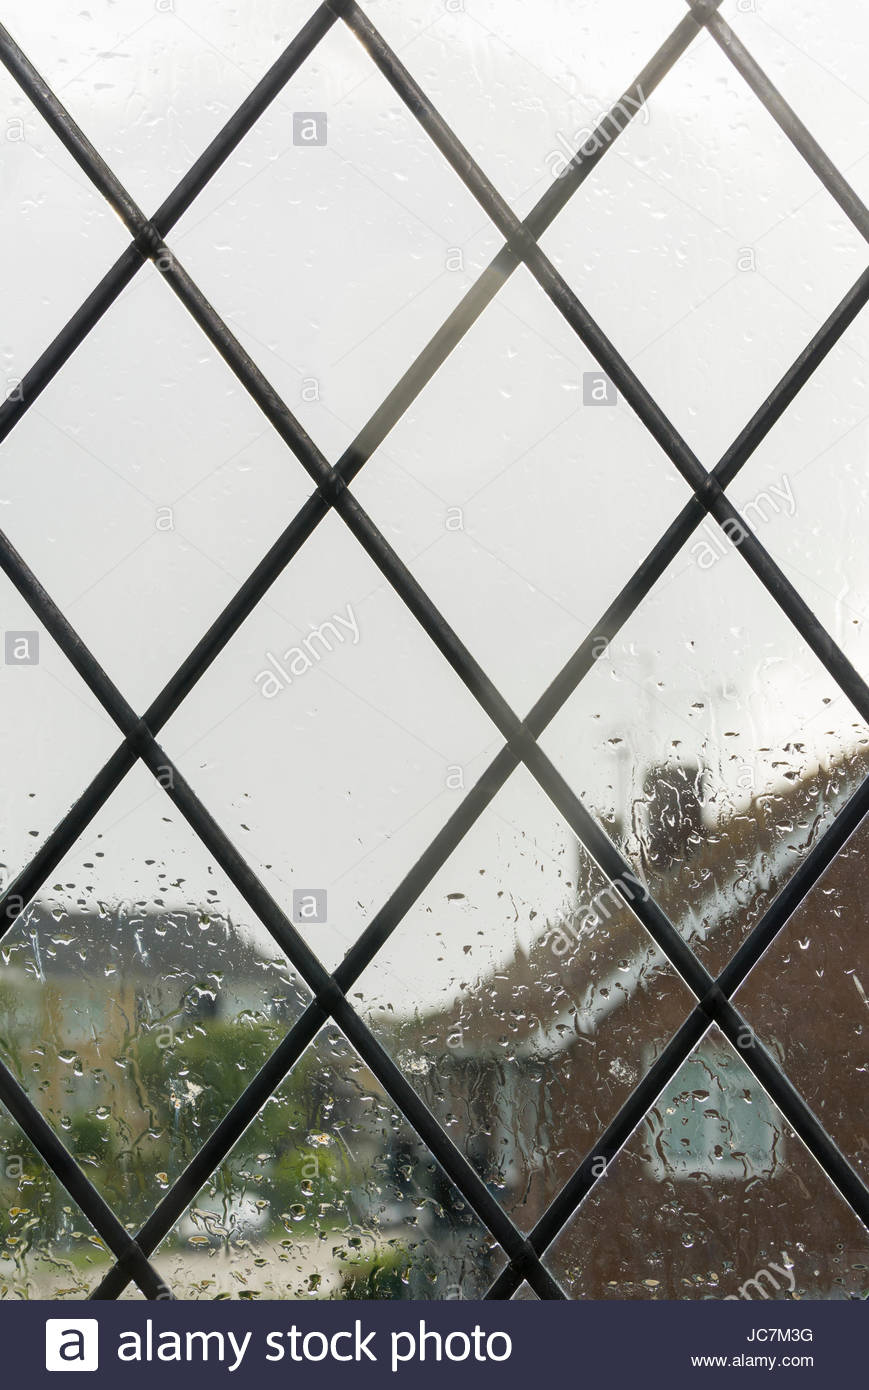 Looking outside through a window to a raining wet day. - Stock Image